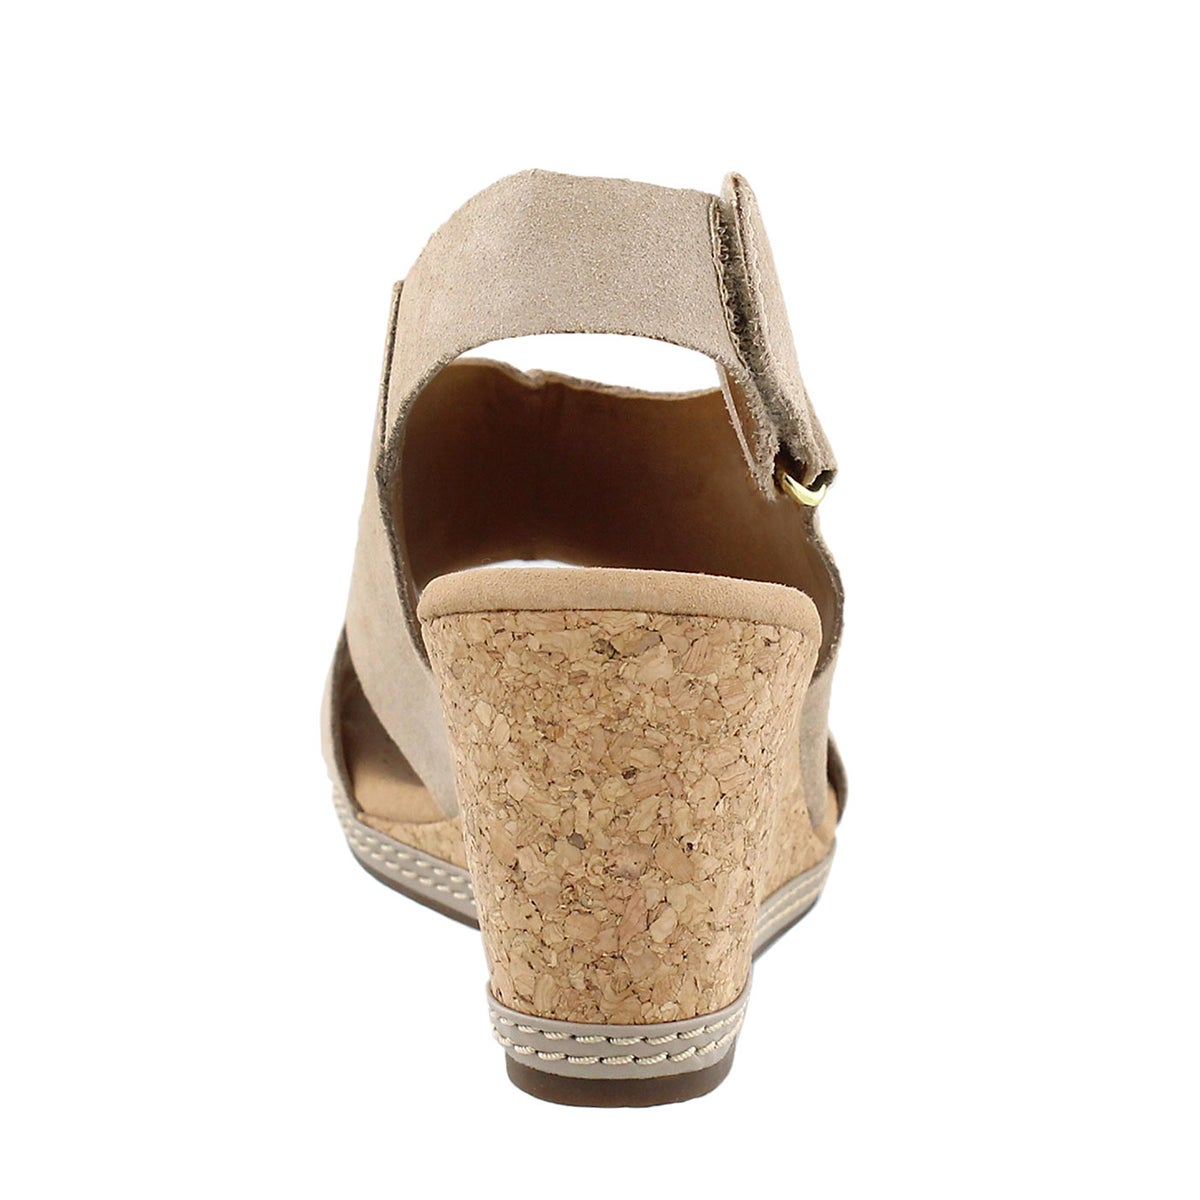 Lds Helio Float sand wedge sandal